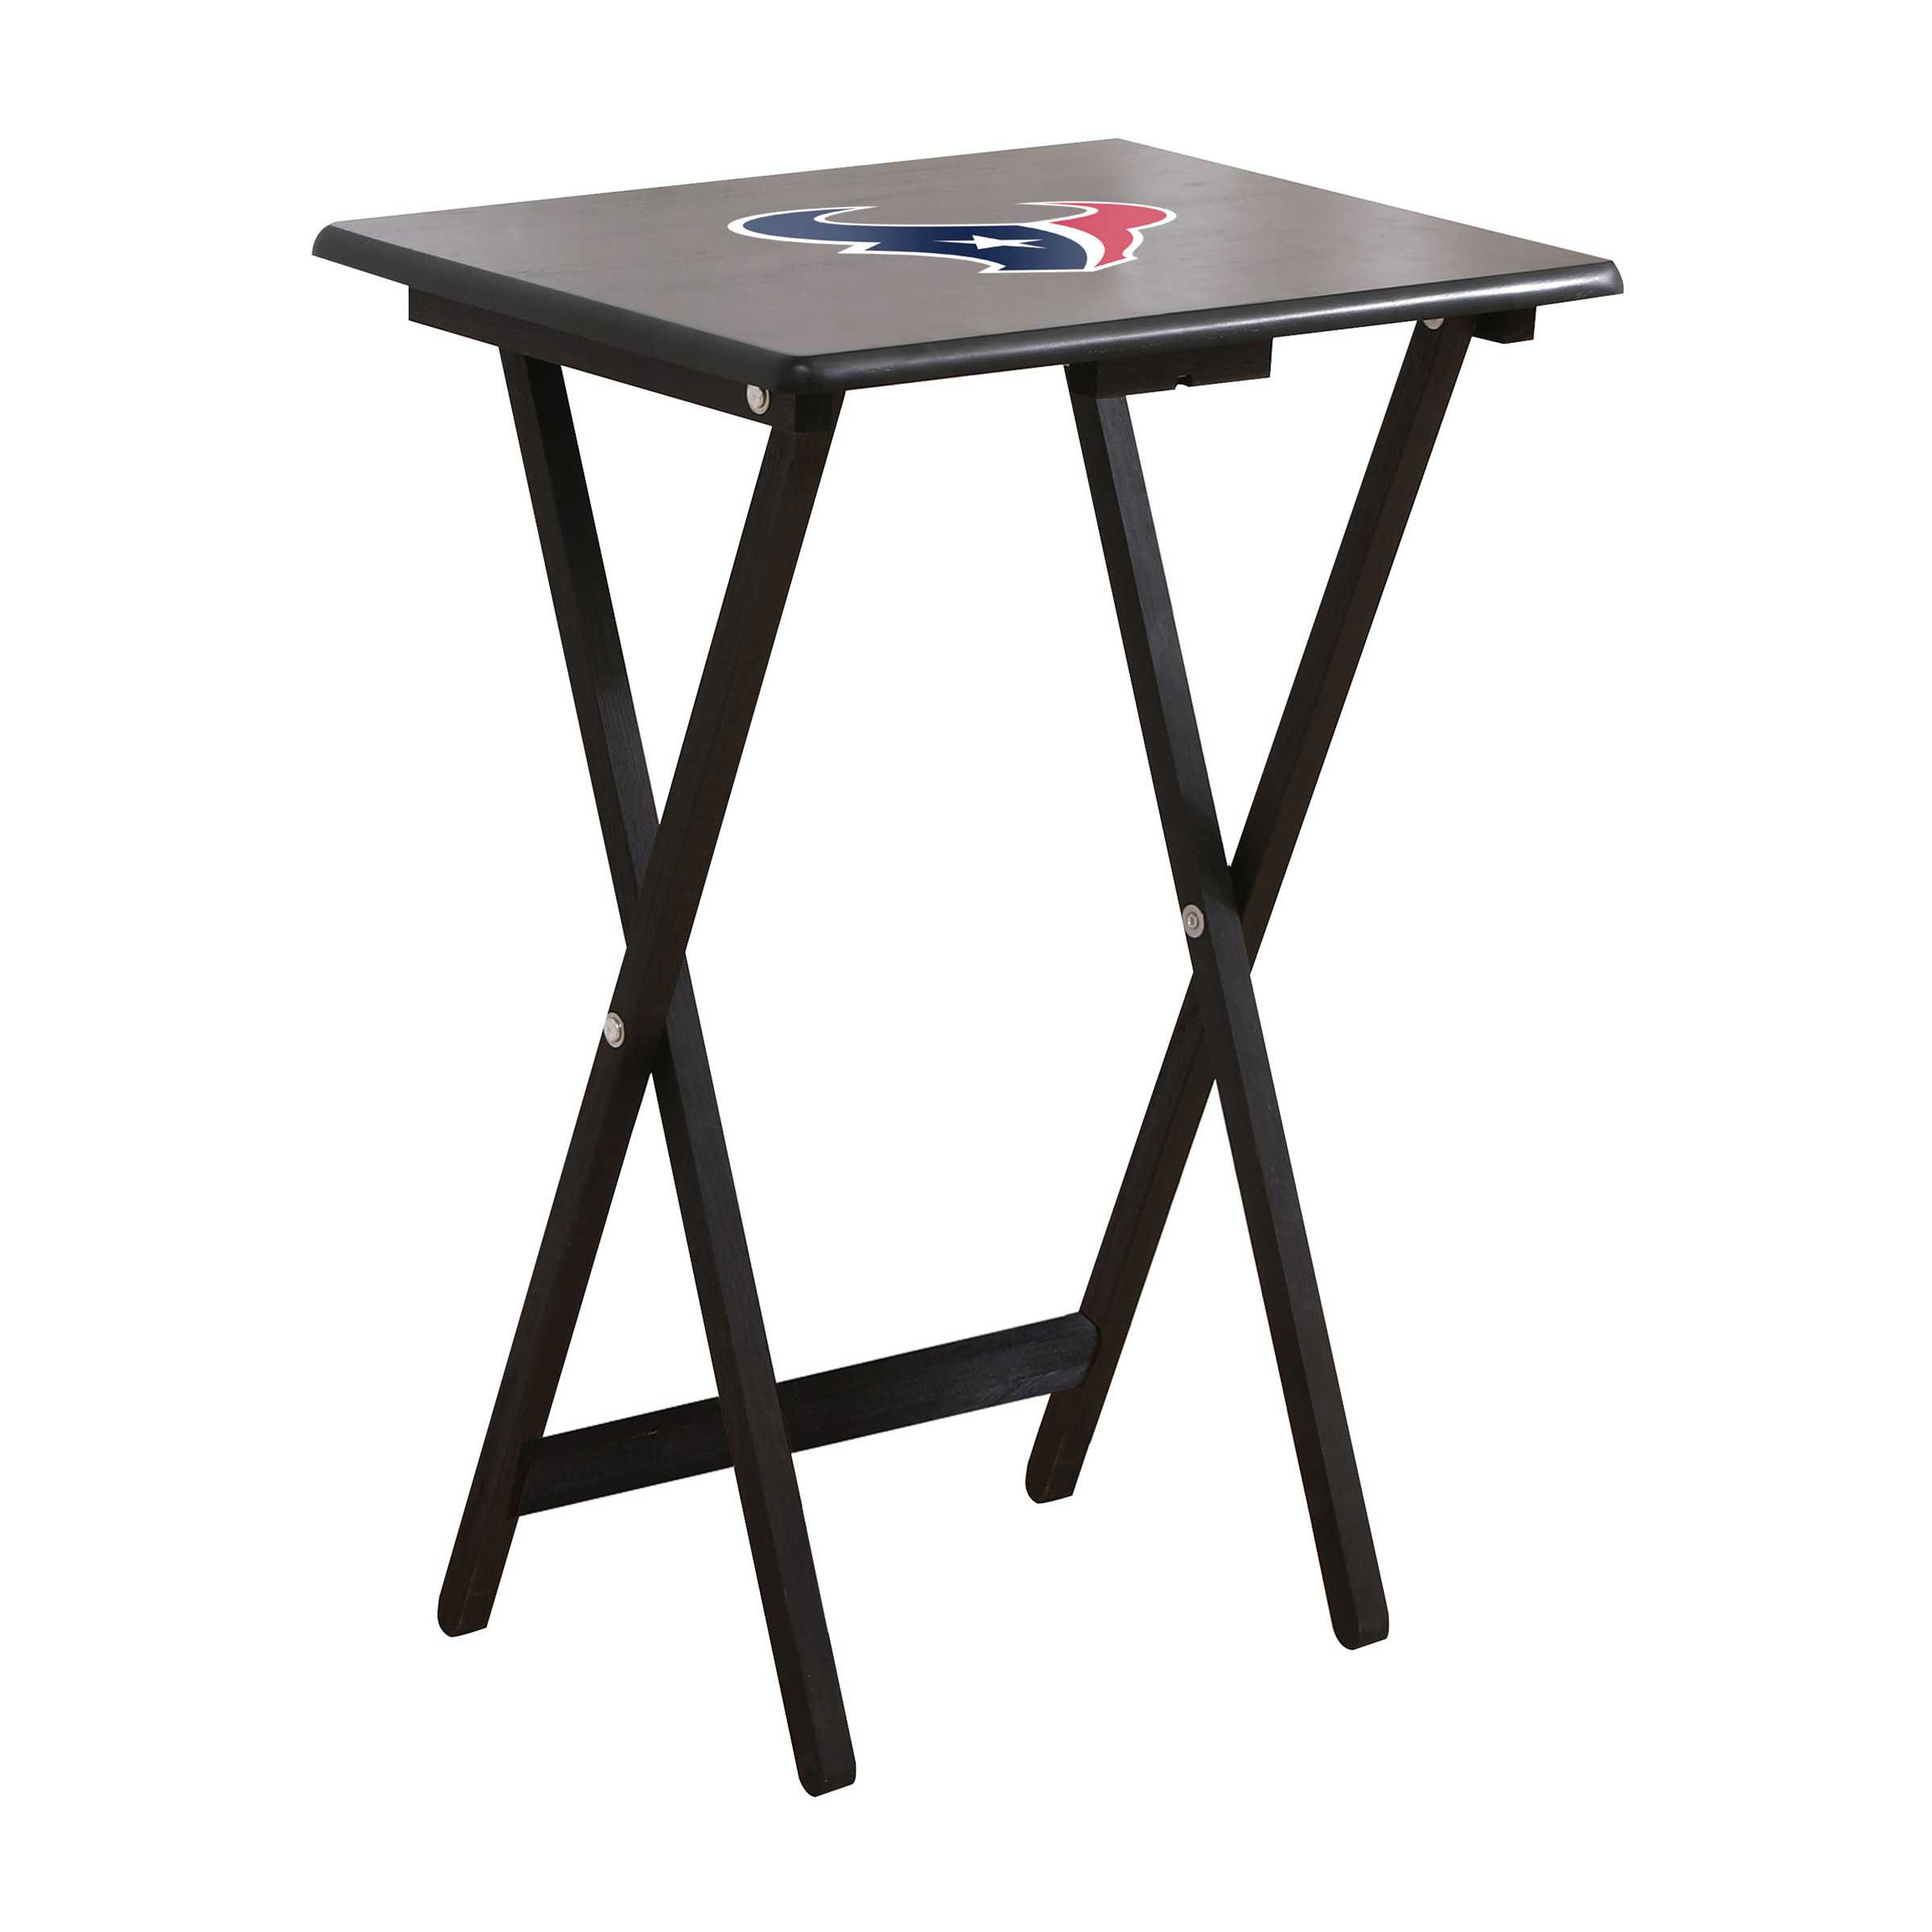 HOUSTON TEXANS 4 TV TRAYS WITH STAND